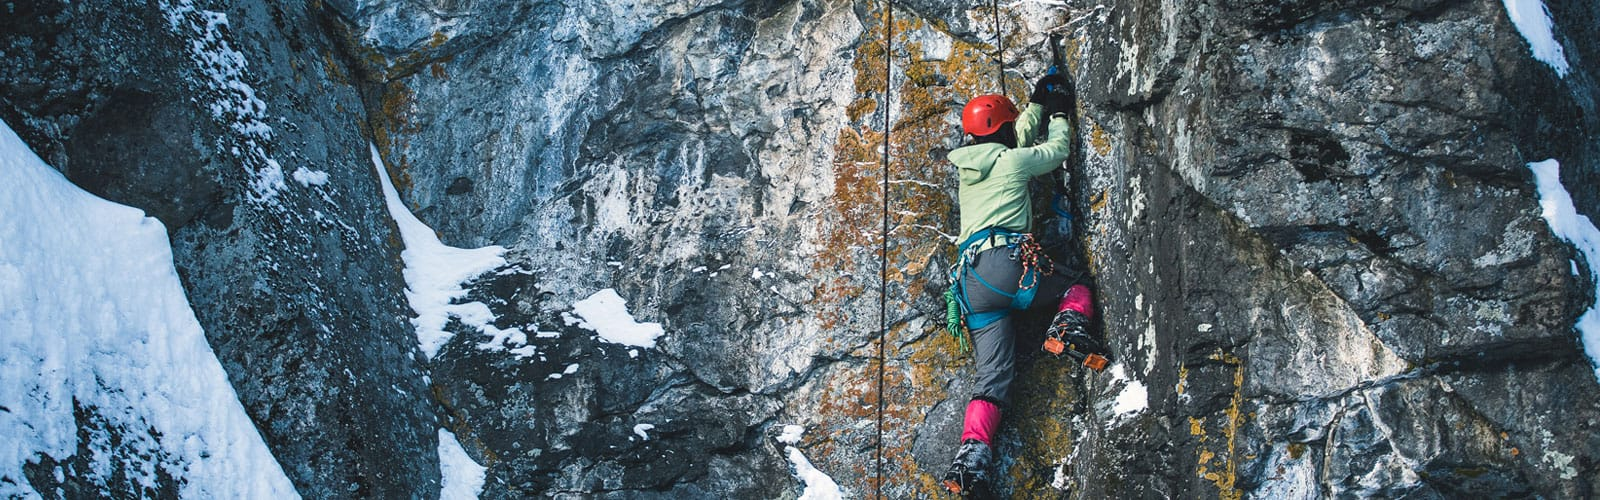 Ice Climbing Clothing and Footwear